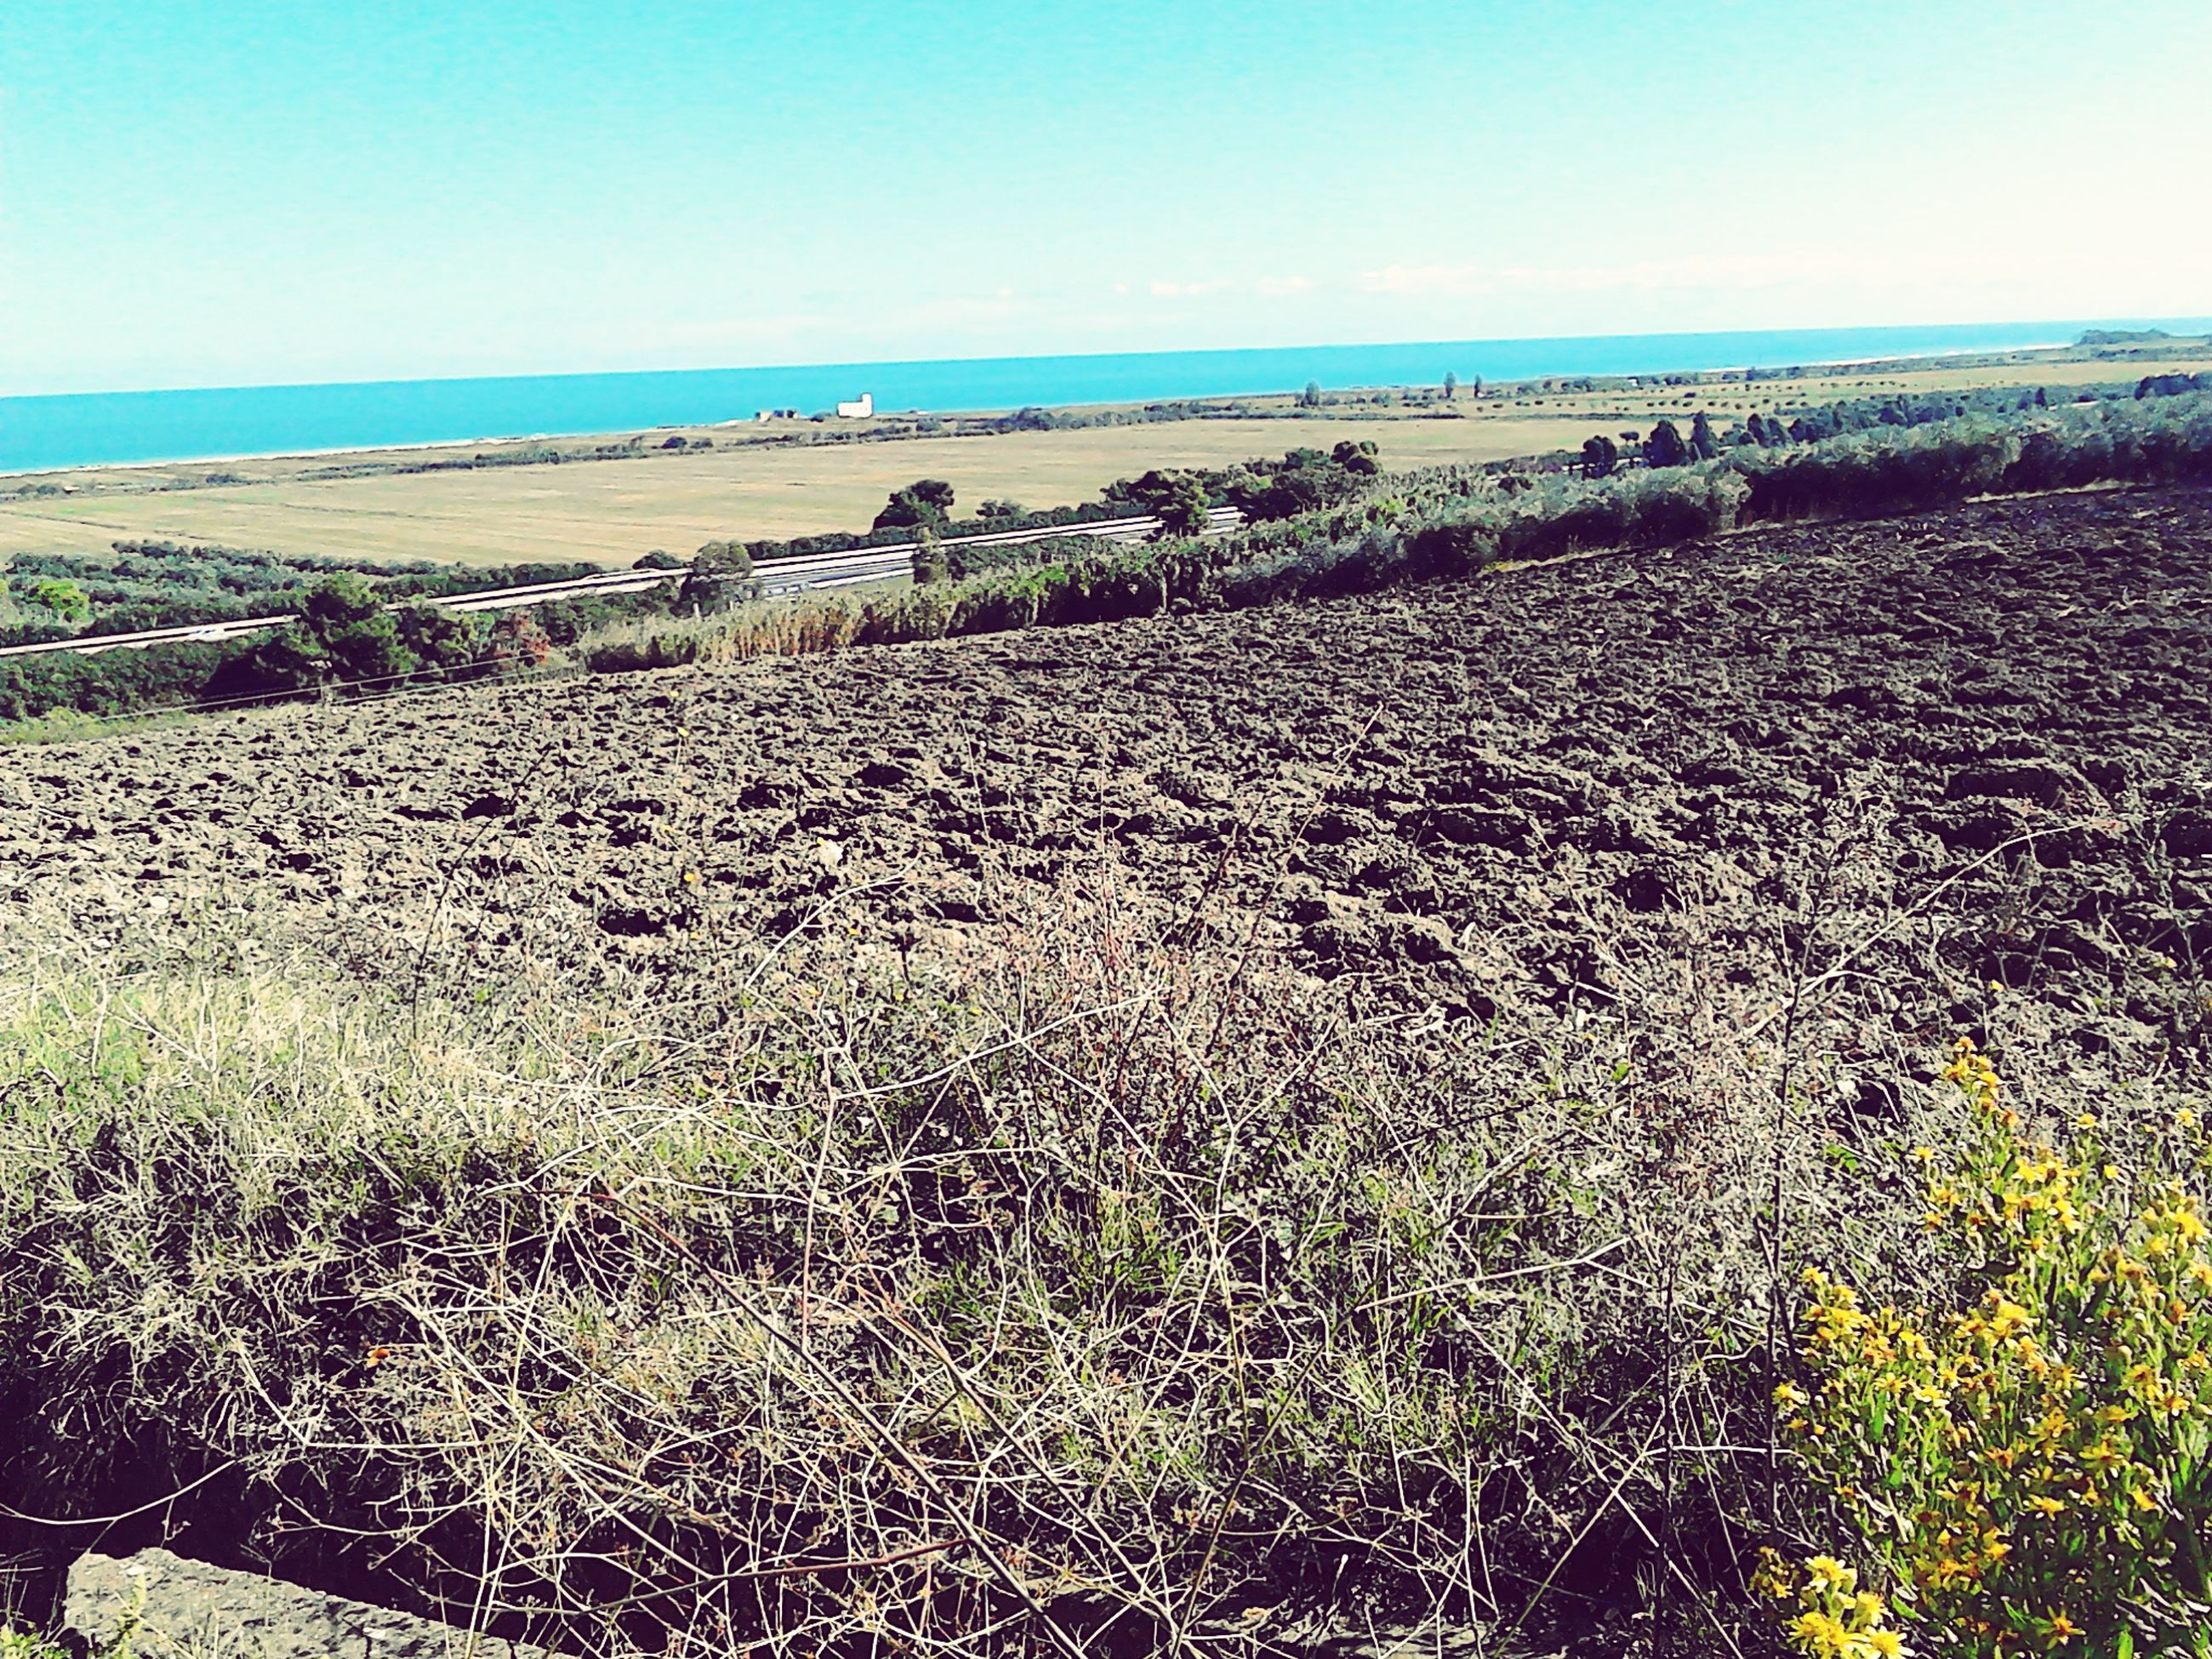 horizon over water, sea, beach, tranquil scene, tranquility, scenics, water, beauty in nature, clear sky, nature, plant, growth, sky, shore, sand, landscape, field, day, idyllic, outdoors